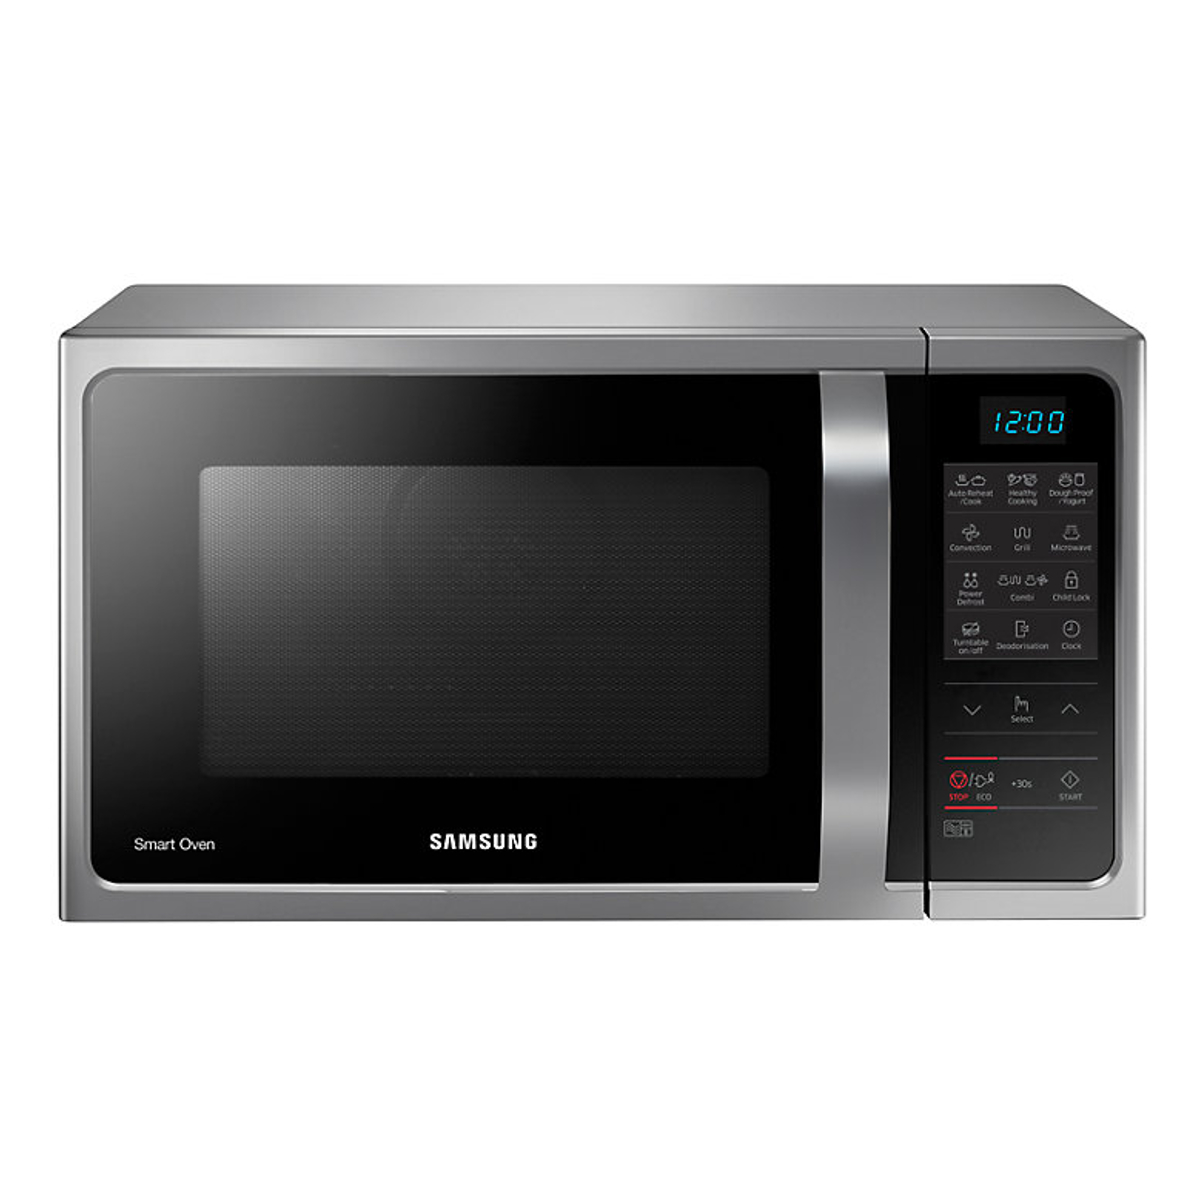 mc28h5013as 28l 900w microwave oven